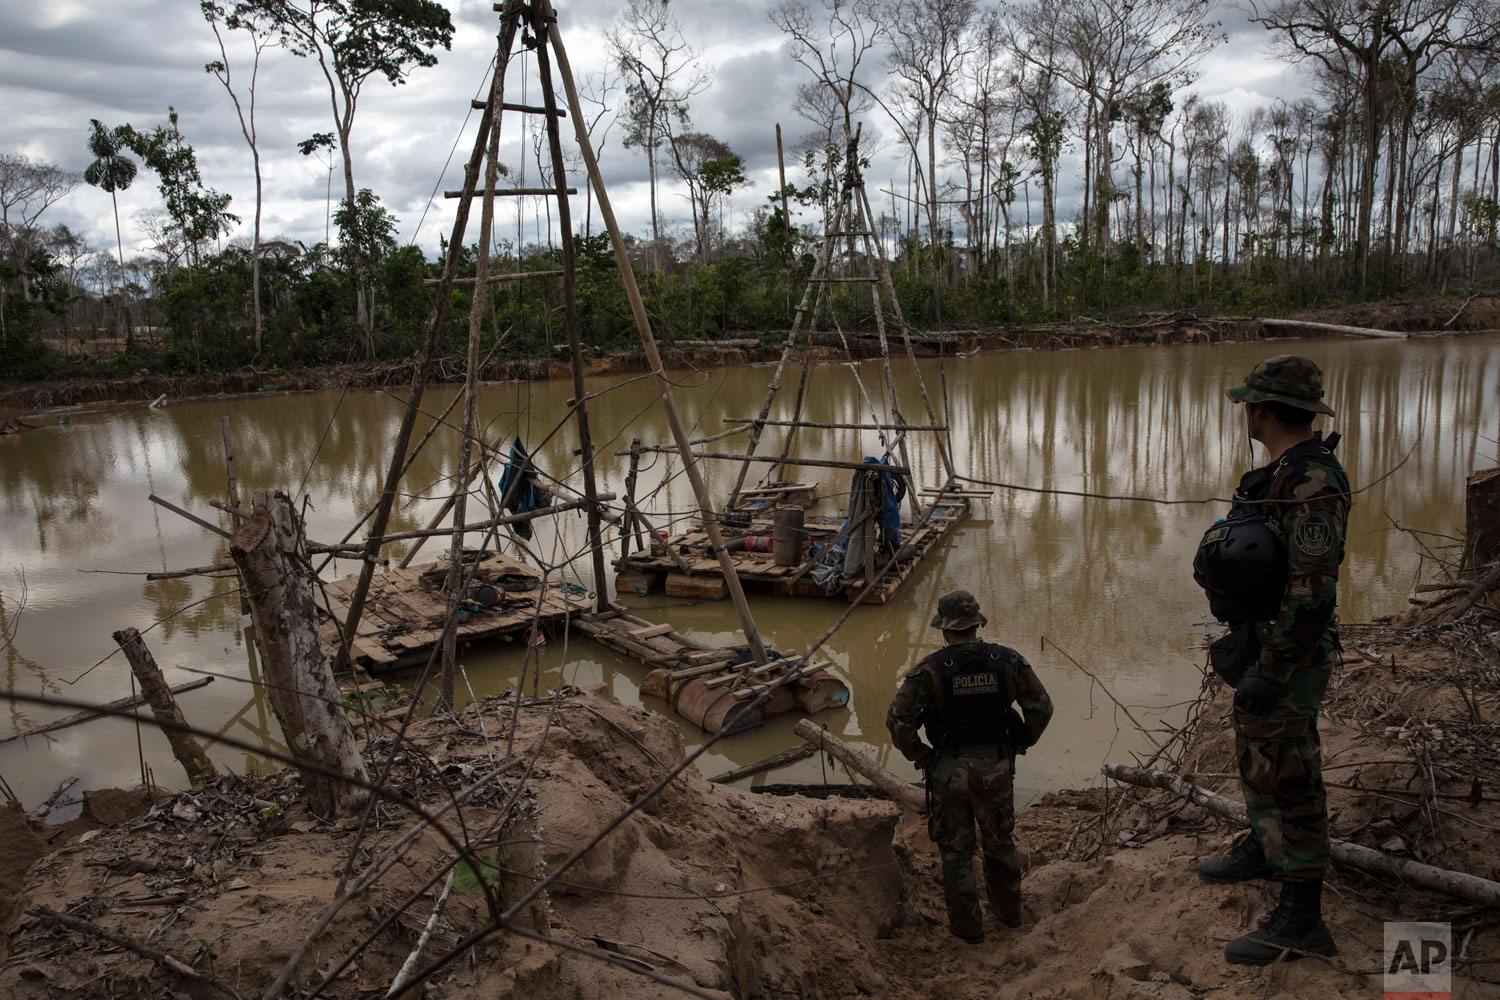 "In this April 1, 2019 photo published May 15, police special forces stand next to illegal mining machinery in Peru's Tambopata province. As part of ""Operation Mercury"", Peruvian police and soldiers search for and destroy equipment used by illegal gold miners in a part of the Amazon rainforest where the mining transformed dense foliage into a desert pocked with dead trees and toxic pools. (AP Photo/Rodrigo Abd)"